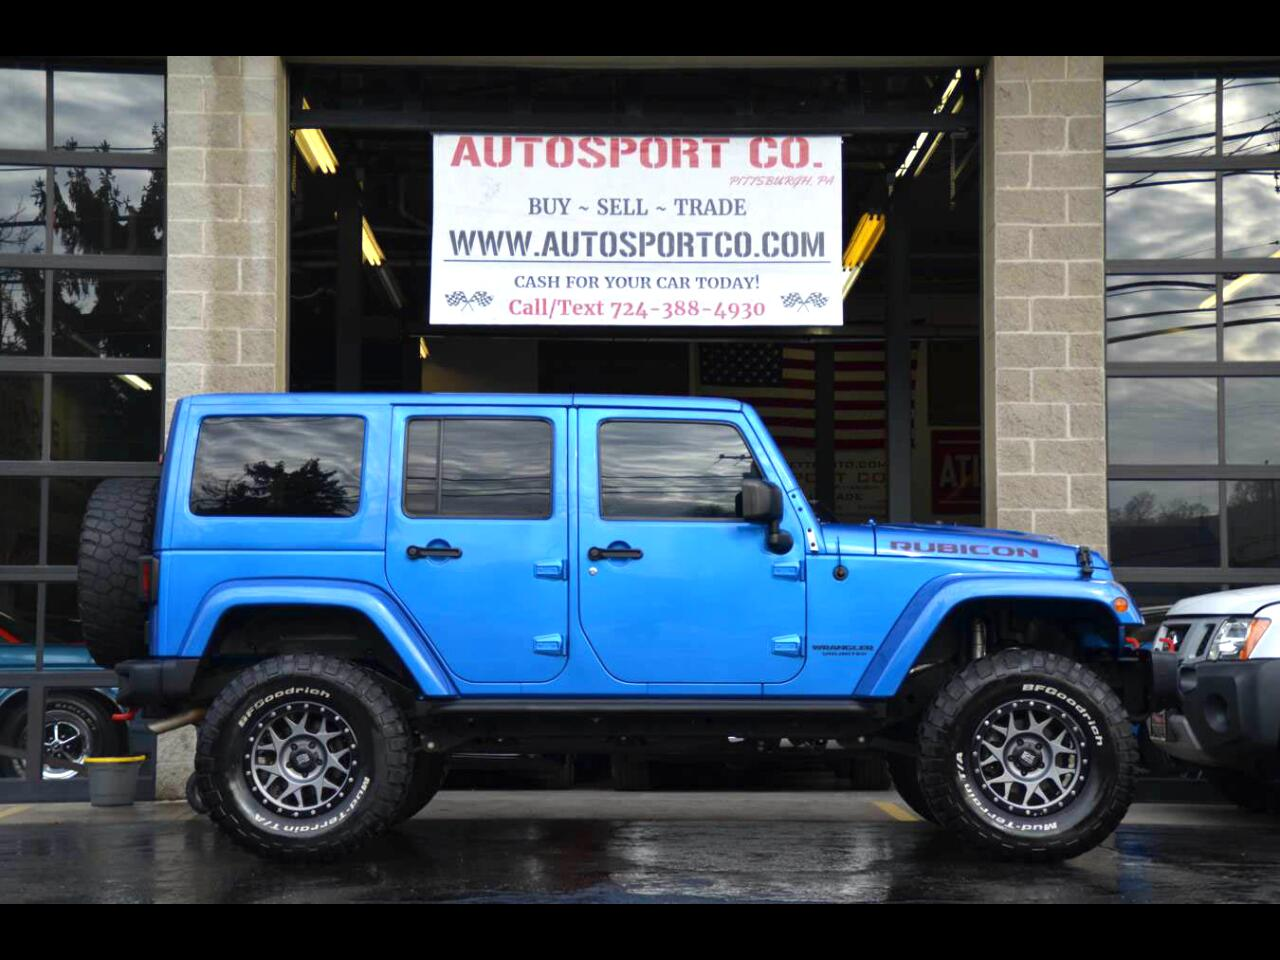 2016 Jeep Wrangler Unlimited Rubicon Hard Rock Edition 4WD